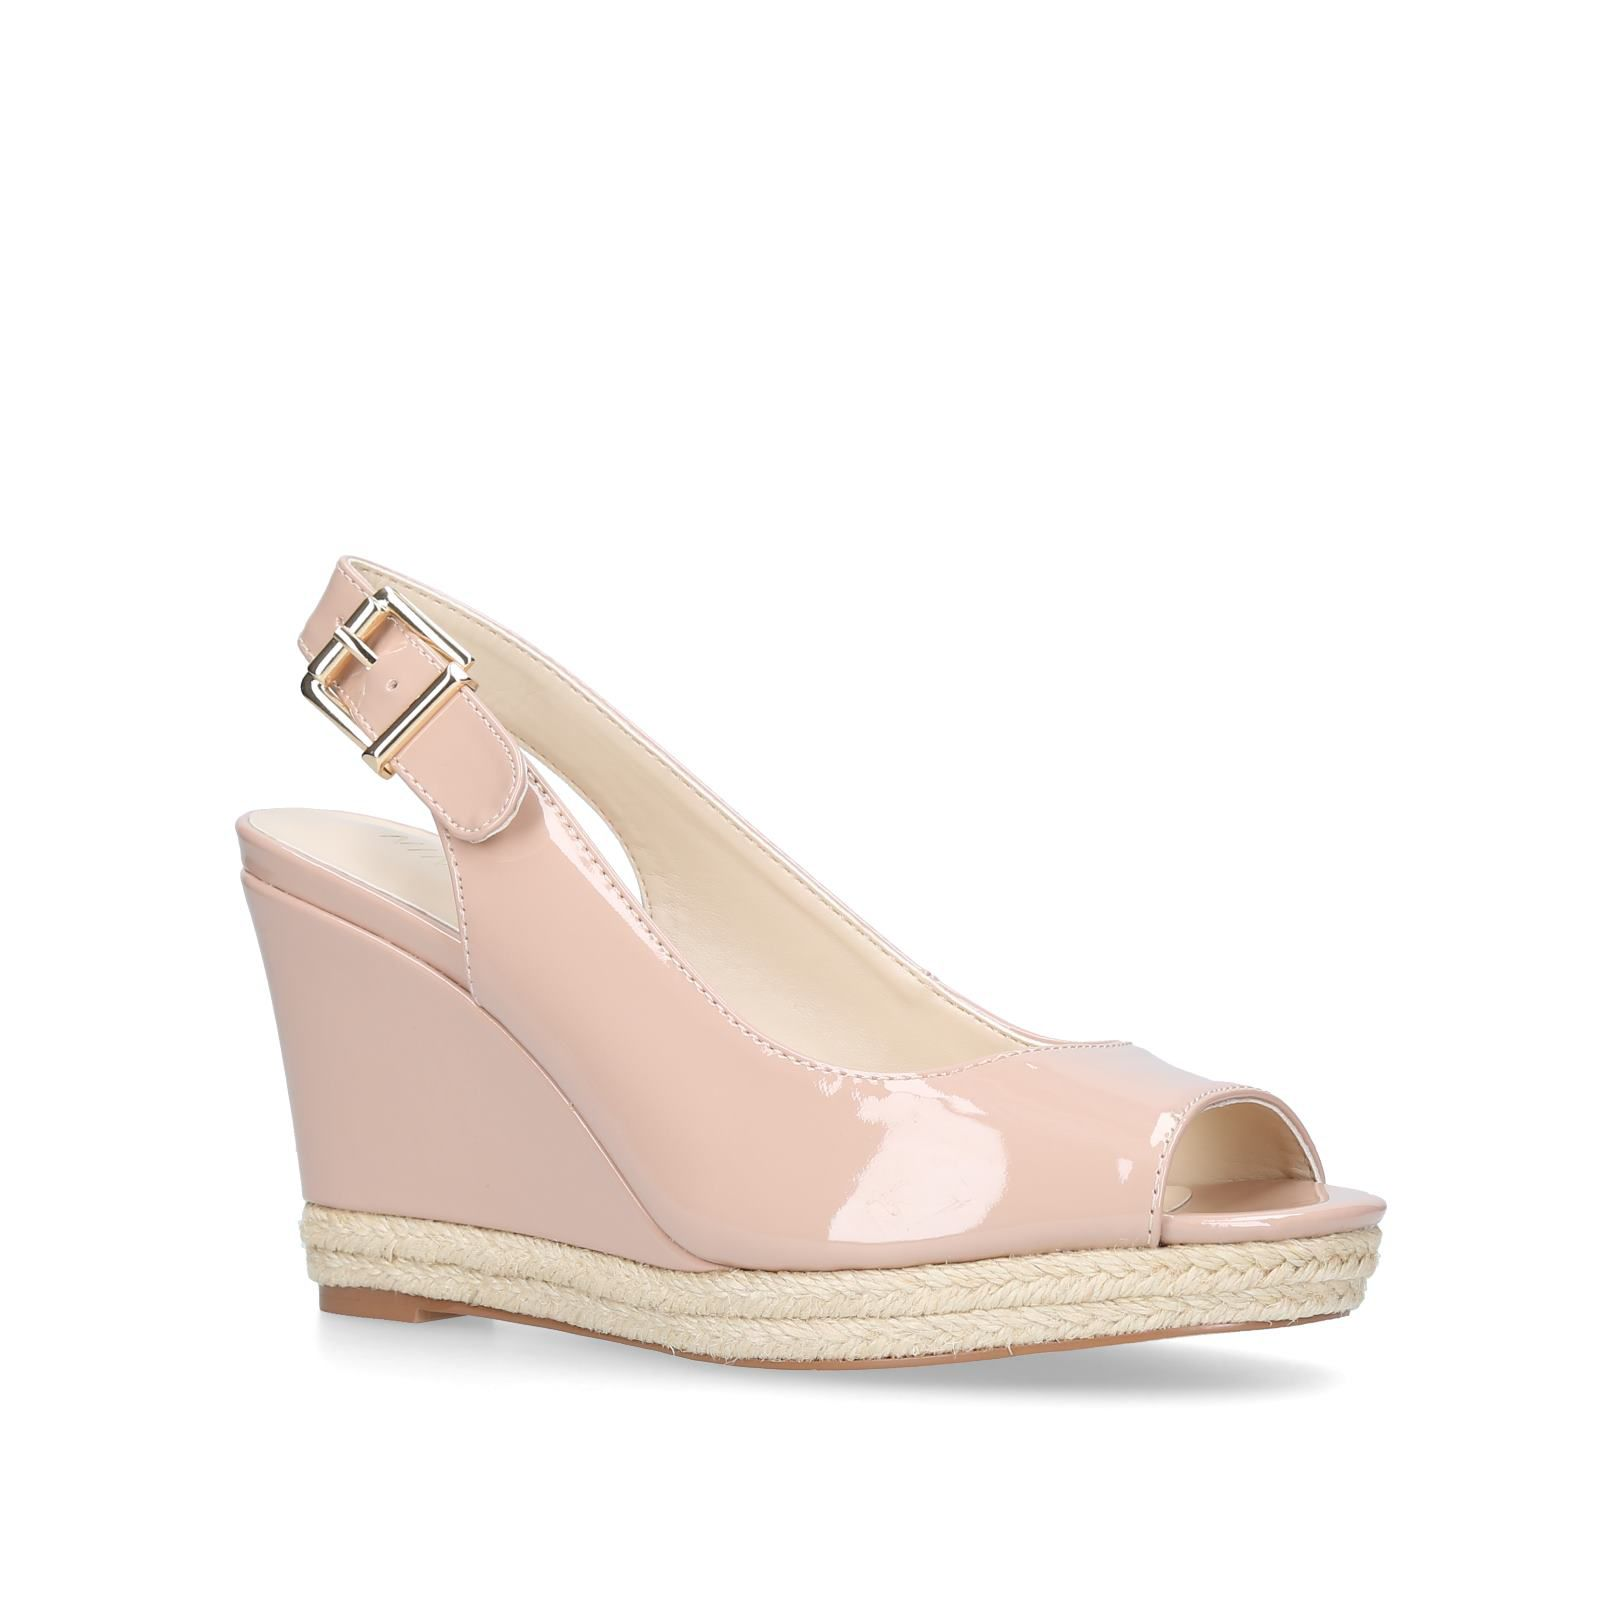 Nine West Dionne Sandals, Nude